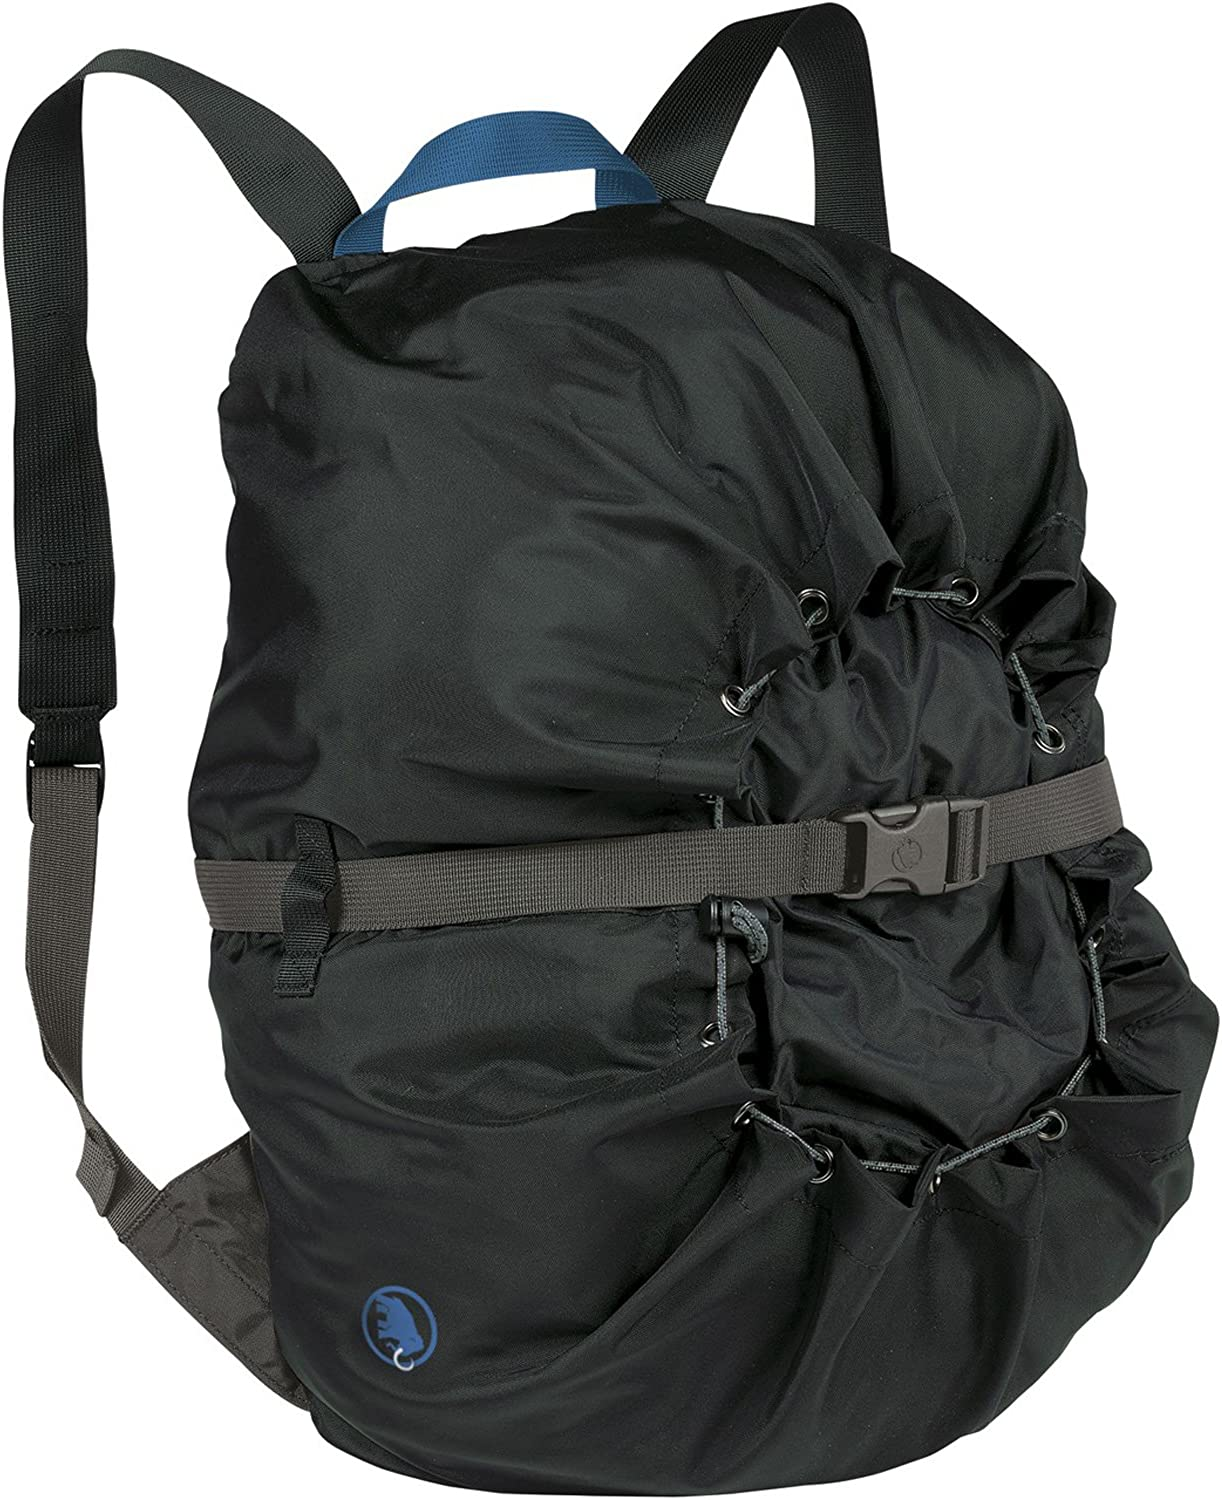 Mammut Rope Challenge the lowest price of Japan ☆ Bag LMNT Popular product